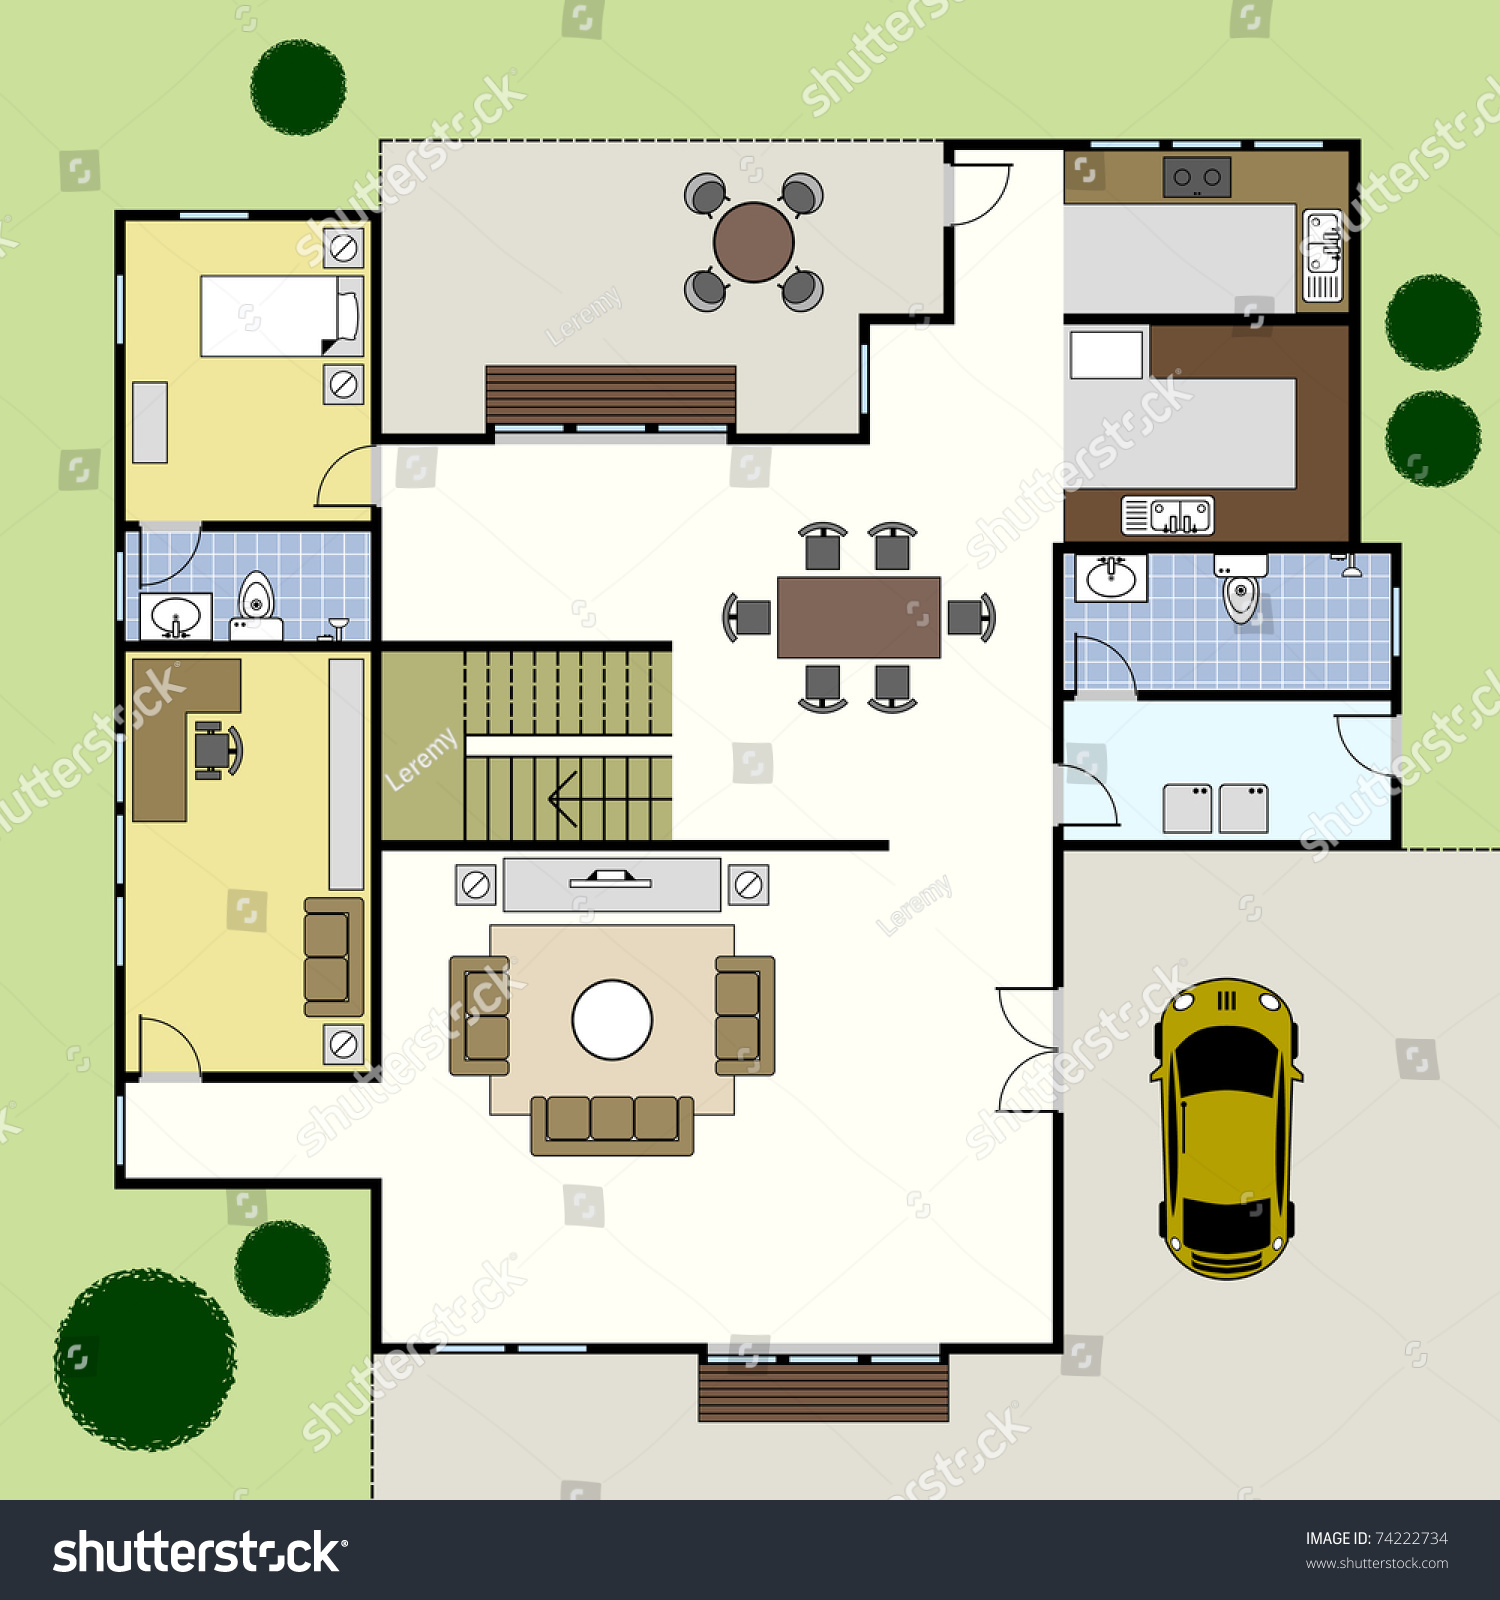 fancy floors zealand images a floor house home free for design plan new plans nz